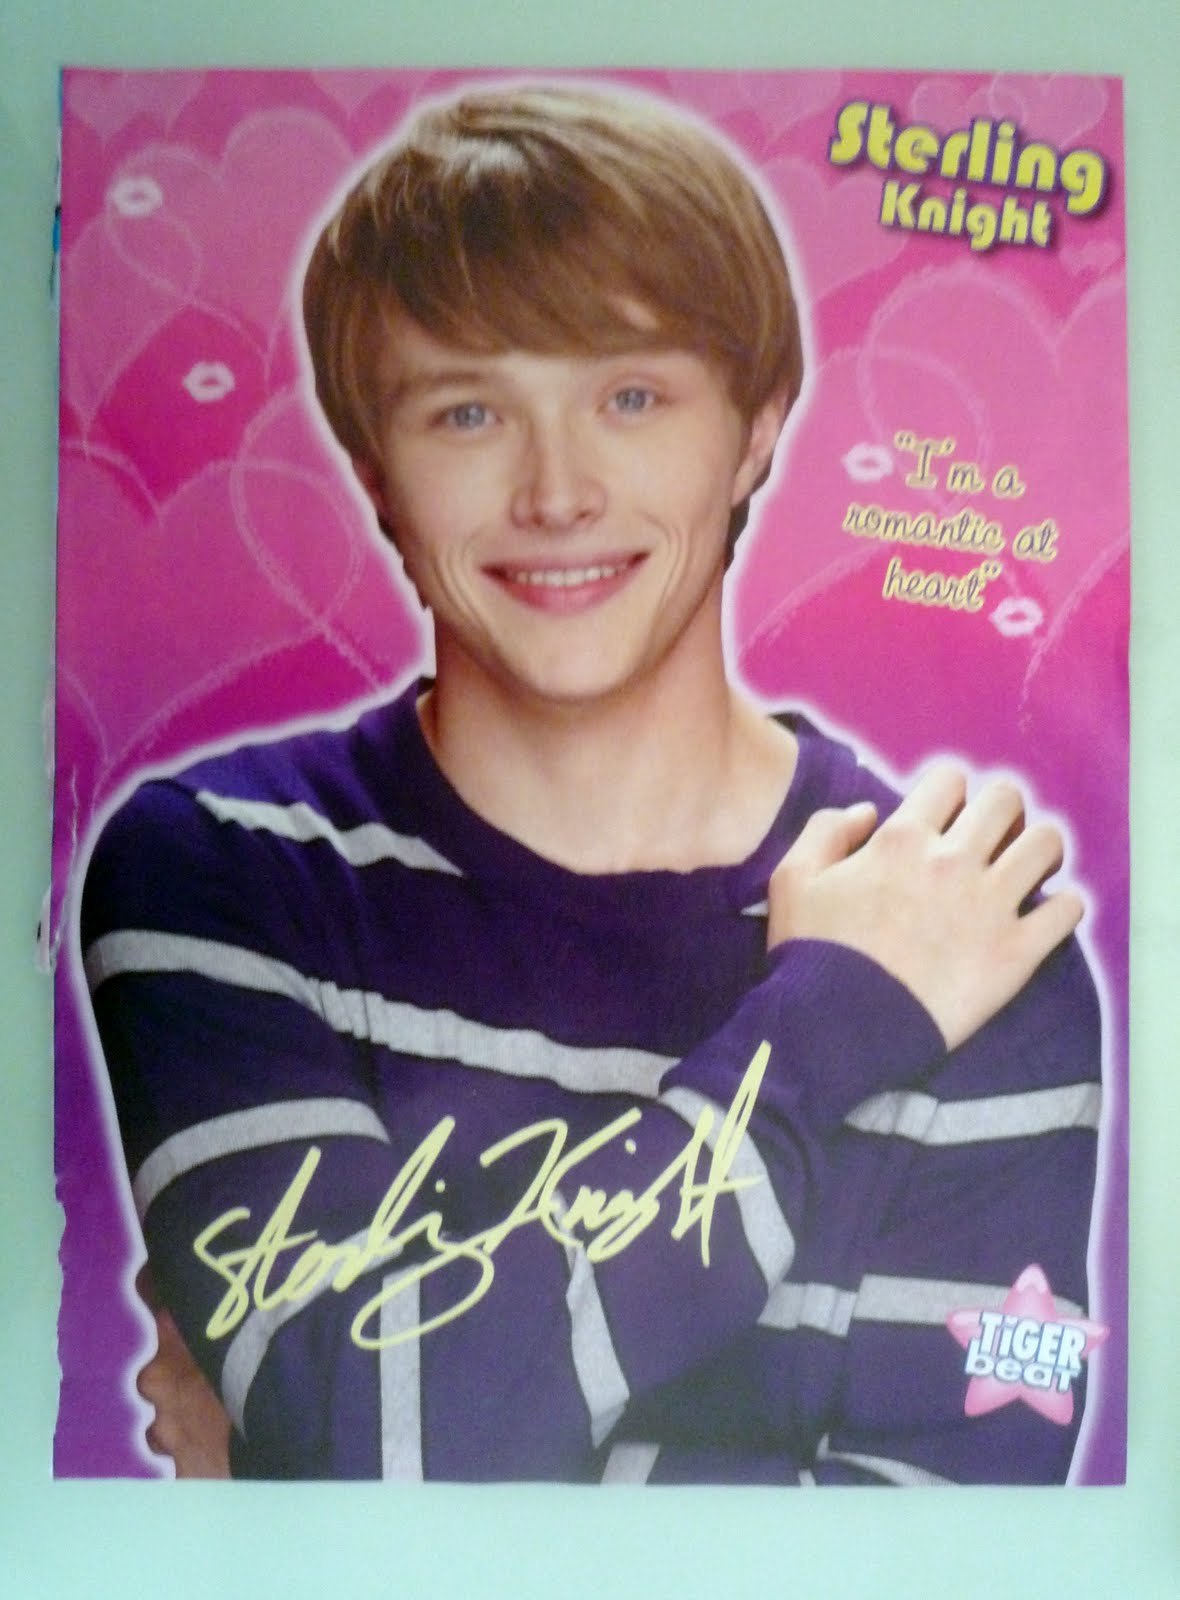 Sterling knight meztelenгјl pron picture